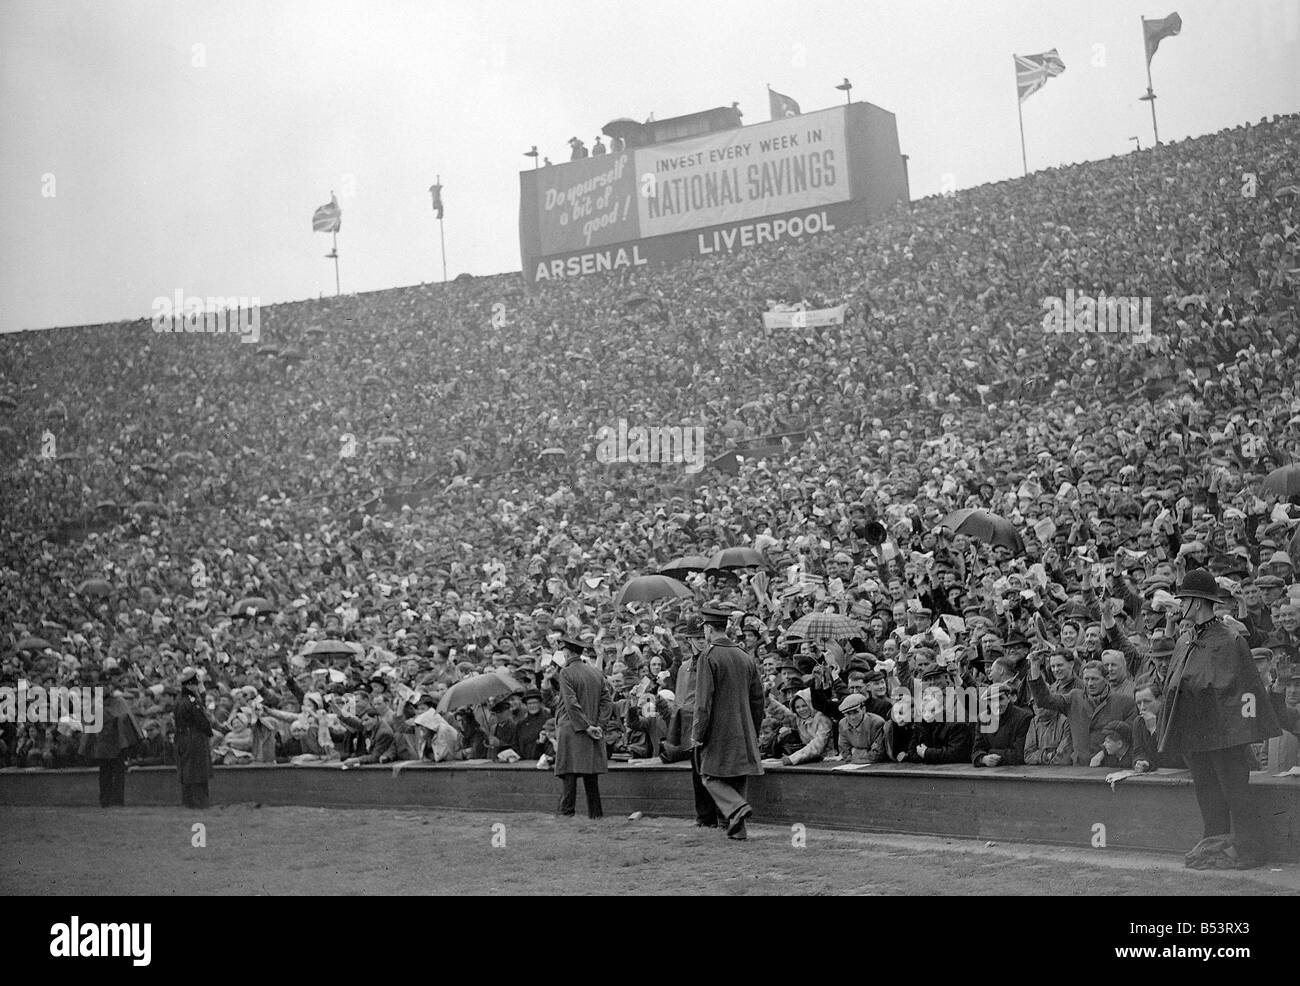 Arsenal v Liverpool FA Cup Final Wembley 1950 DM 023836 16 1950Stock Photo